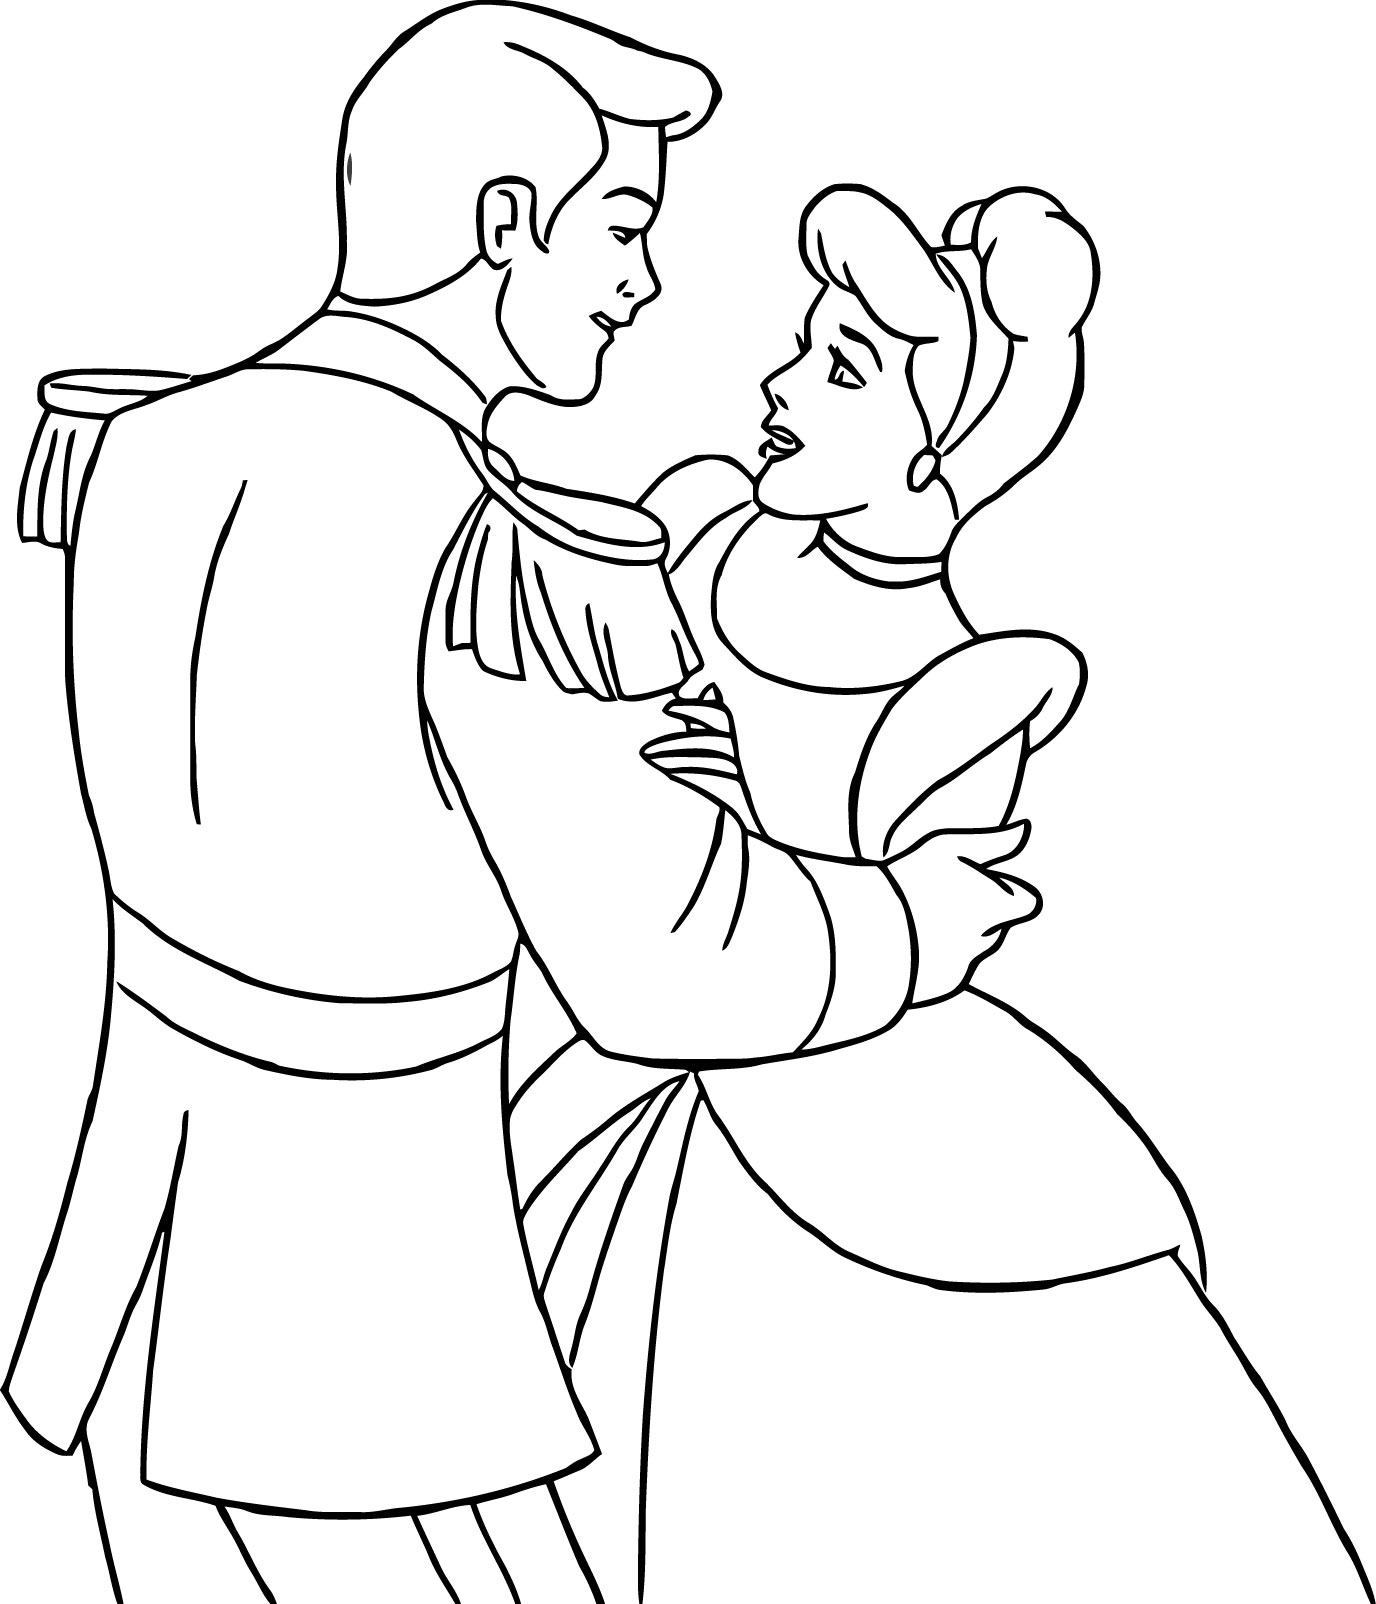 Cinderella and prince charming coloring pages for Cinderella coloring pages online